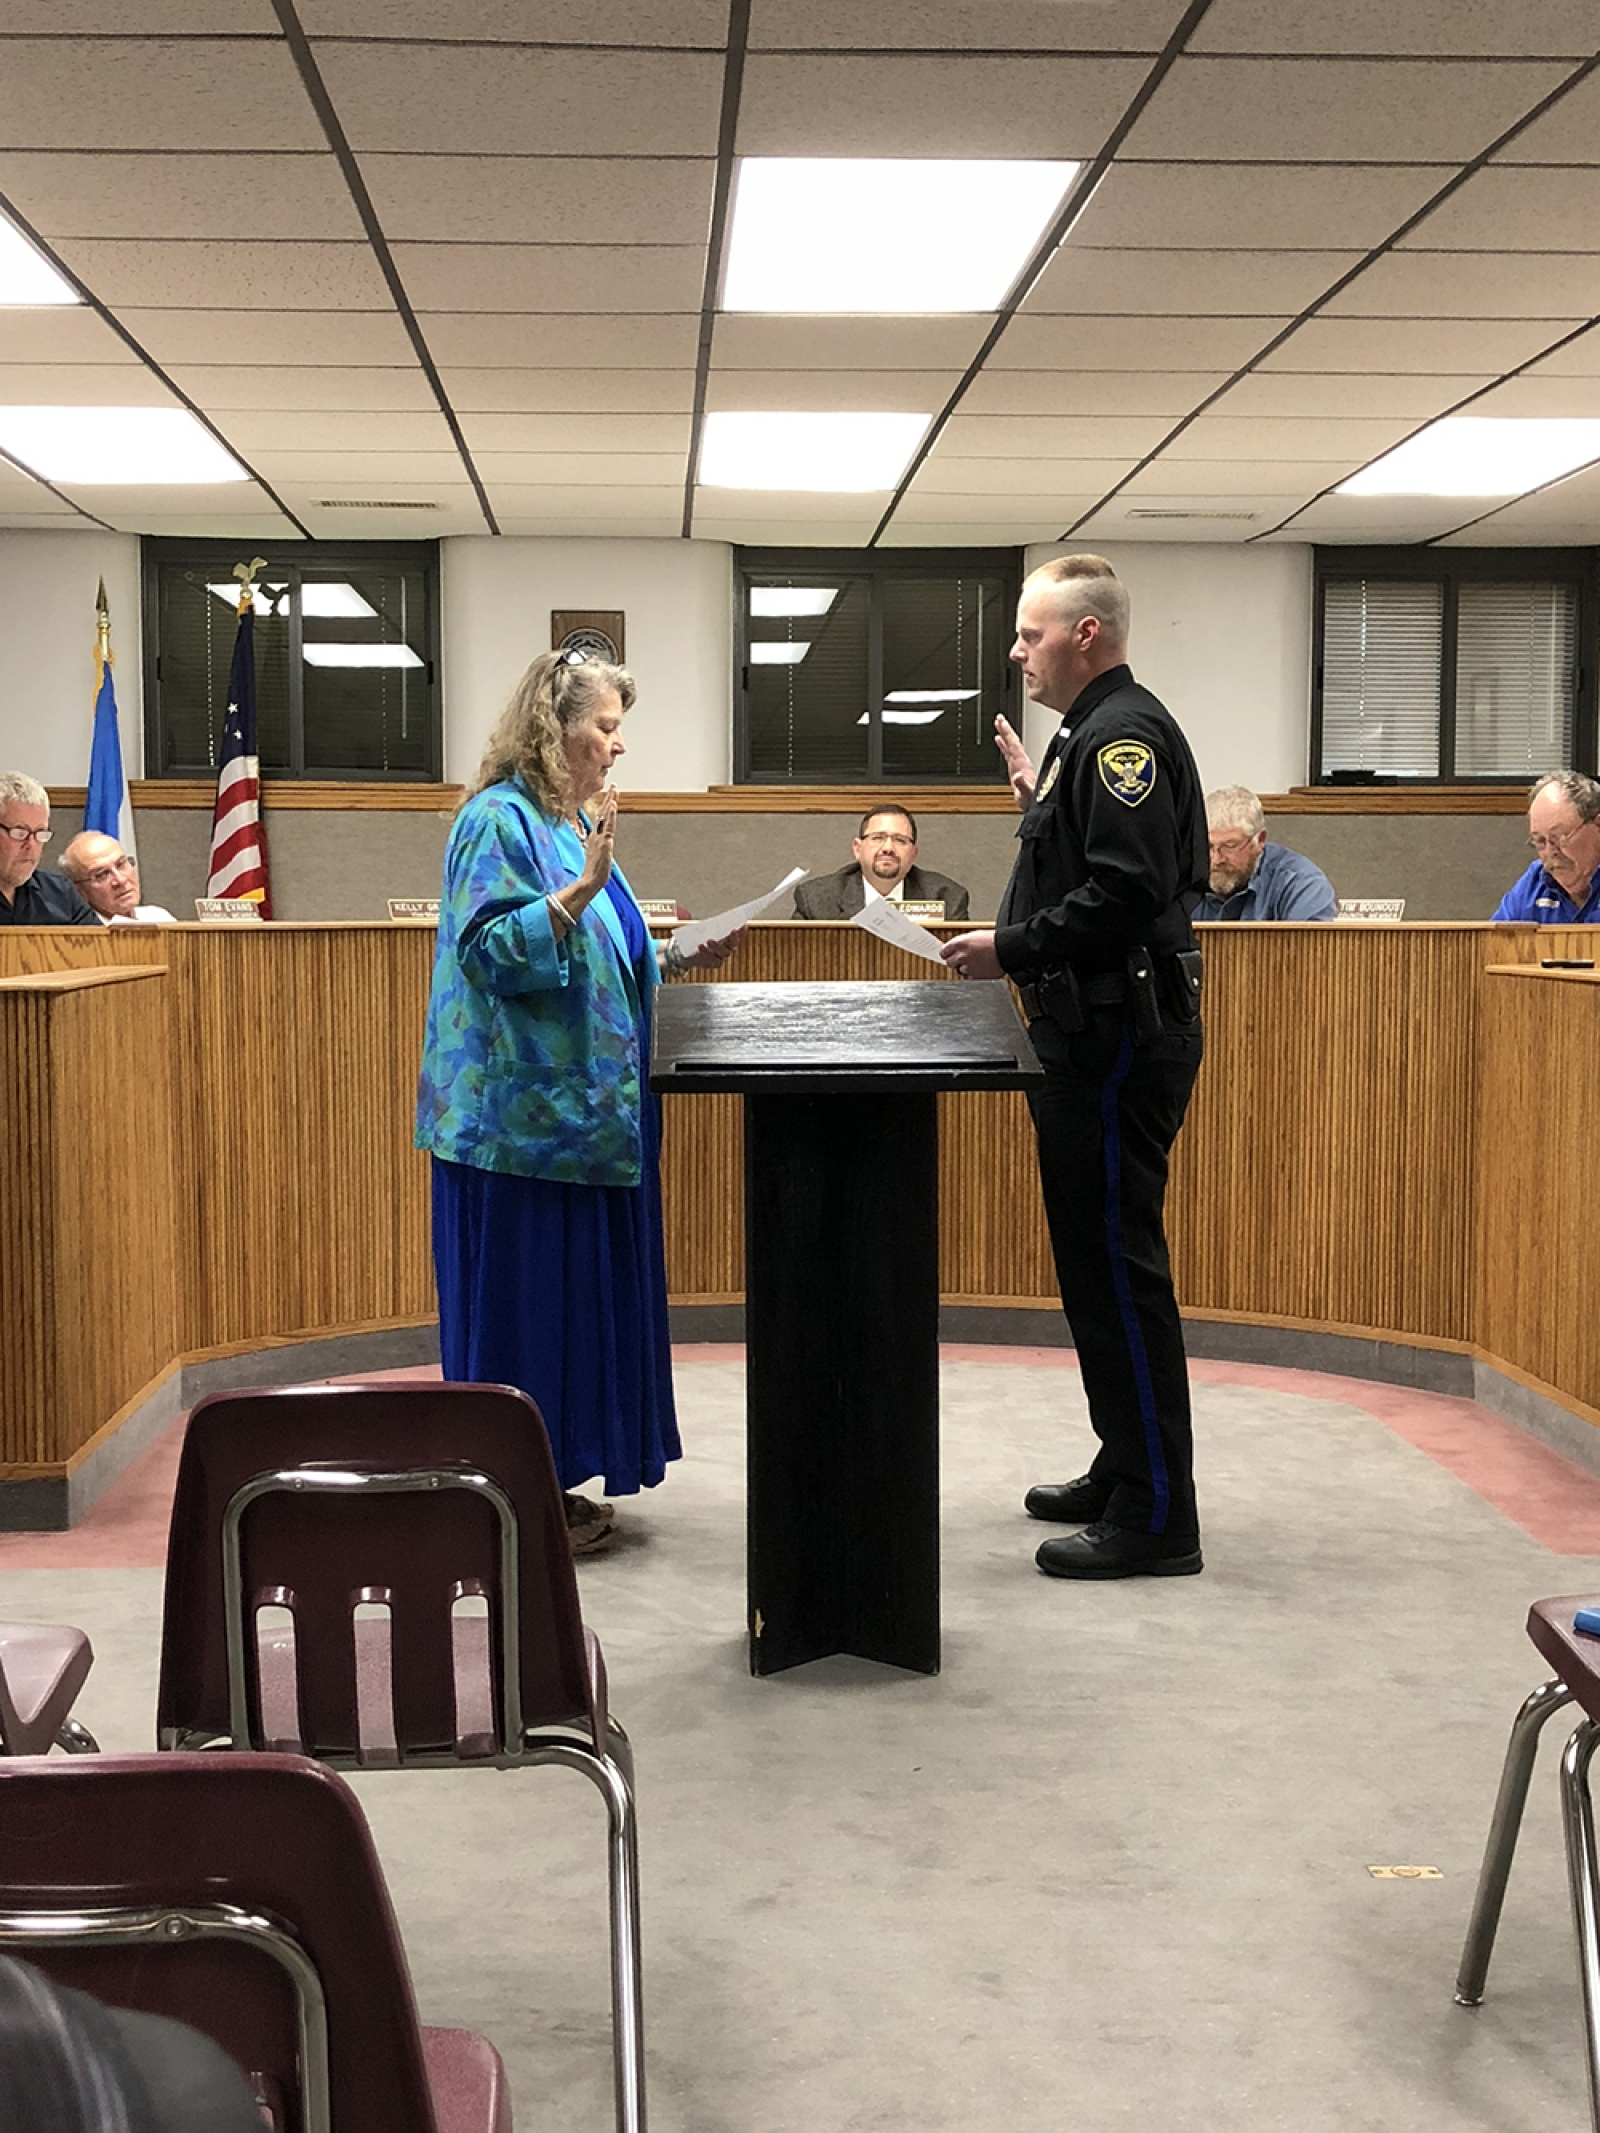 Mayor Nancy Russell swears in Officer Benjamin Plemons at the Gordon City Council meeting on August 6.